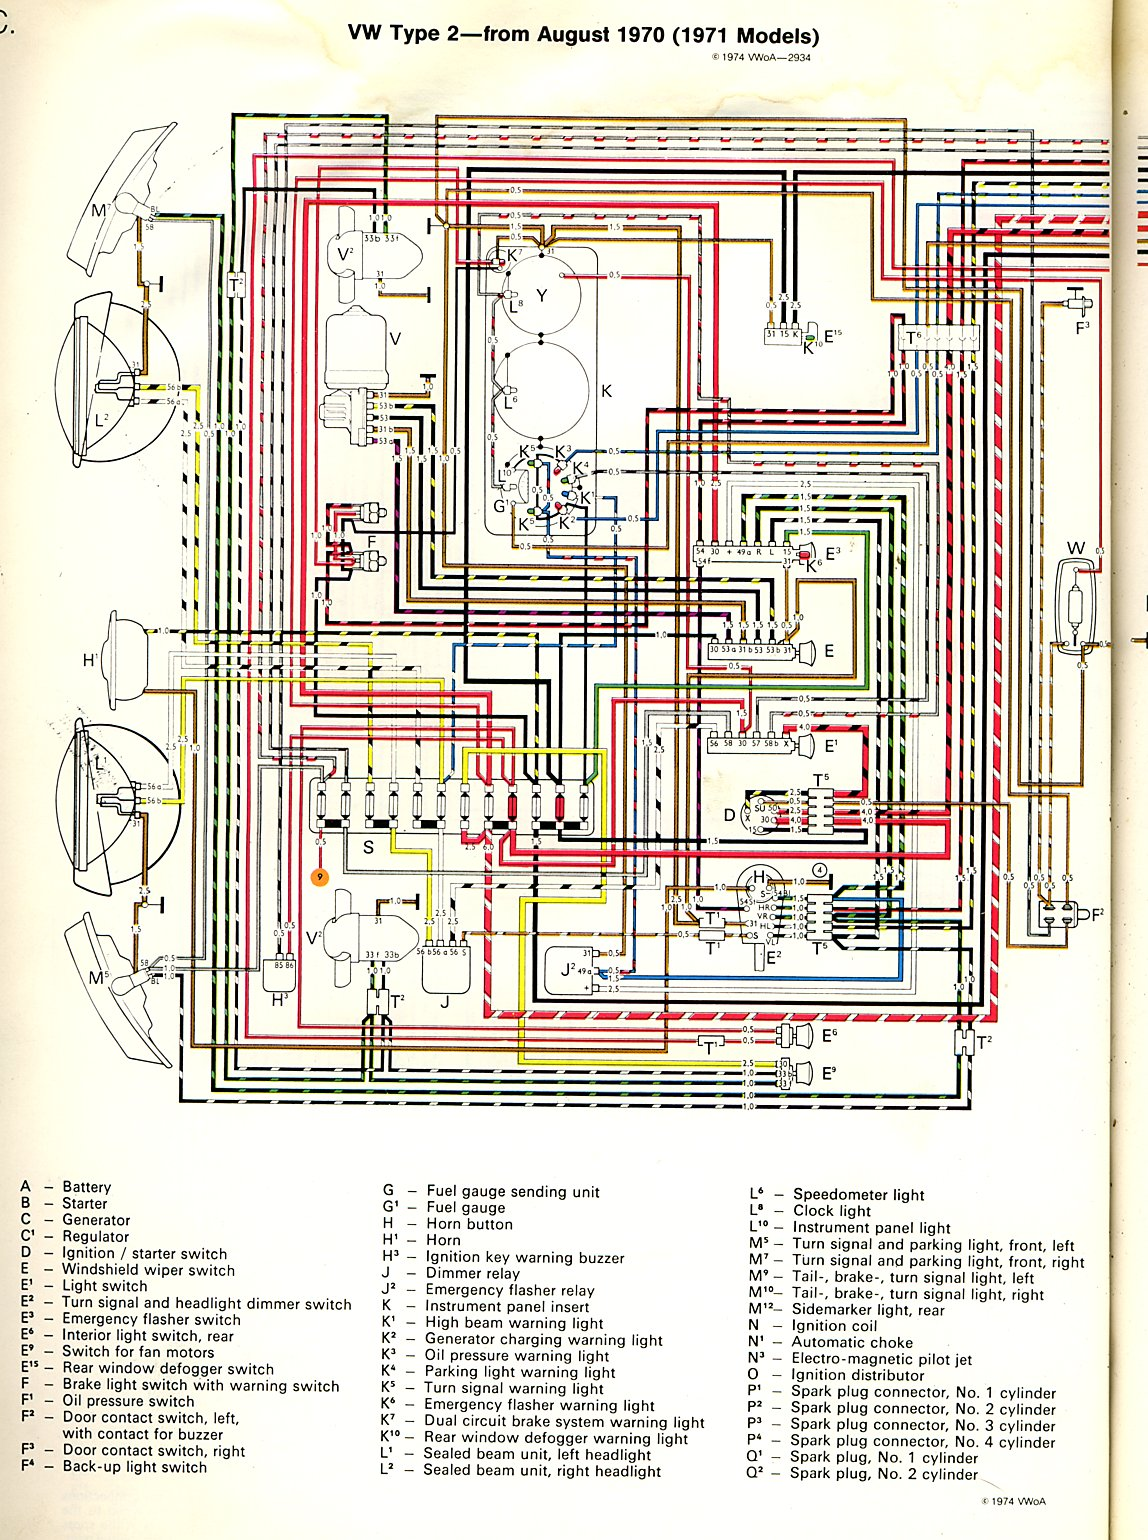 baybus_71a thesamba com type 2 wiring diagrams 1971 corvette wiring diagram at panicattacktreatment.co